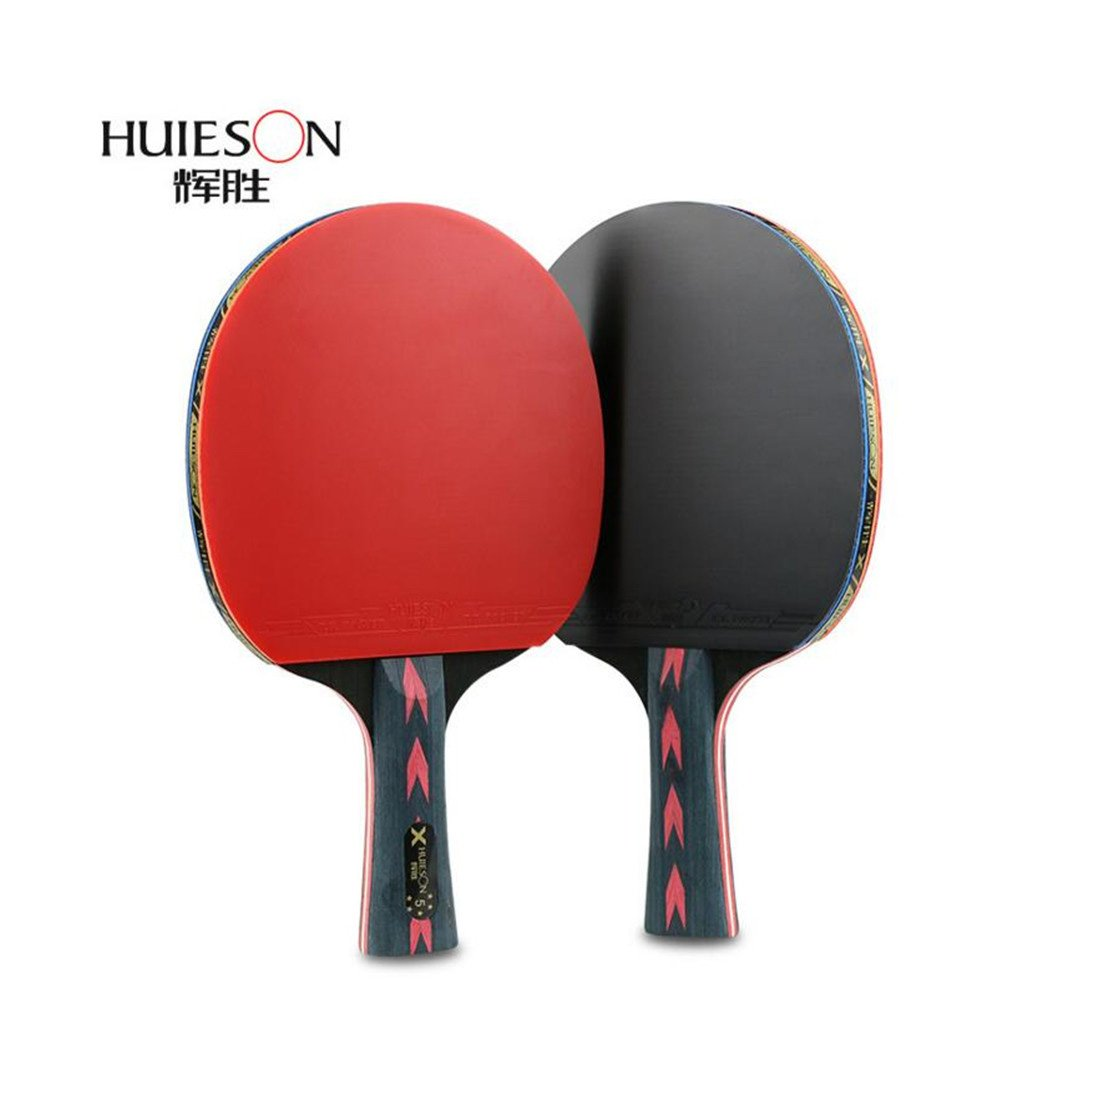 Amazon.com : Five-star table tennis rackets 2 packs Double shot To shoot Professional training table tennis racket (1 long +1 short) : Sports & Outdoors